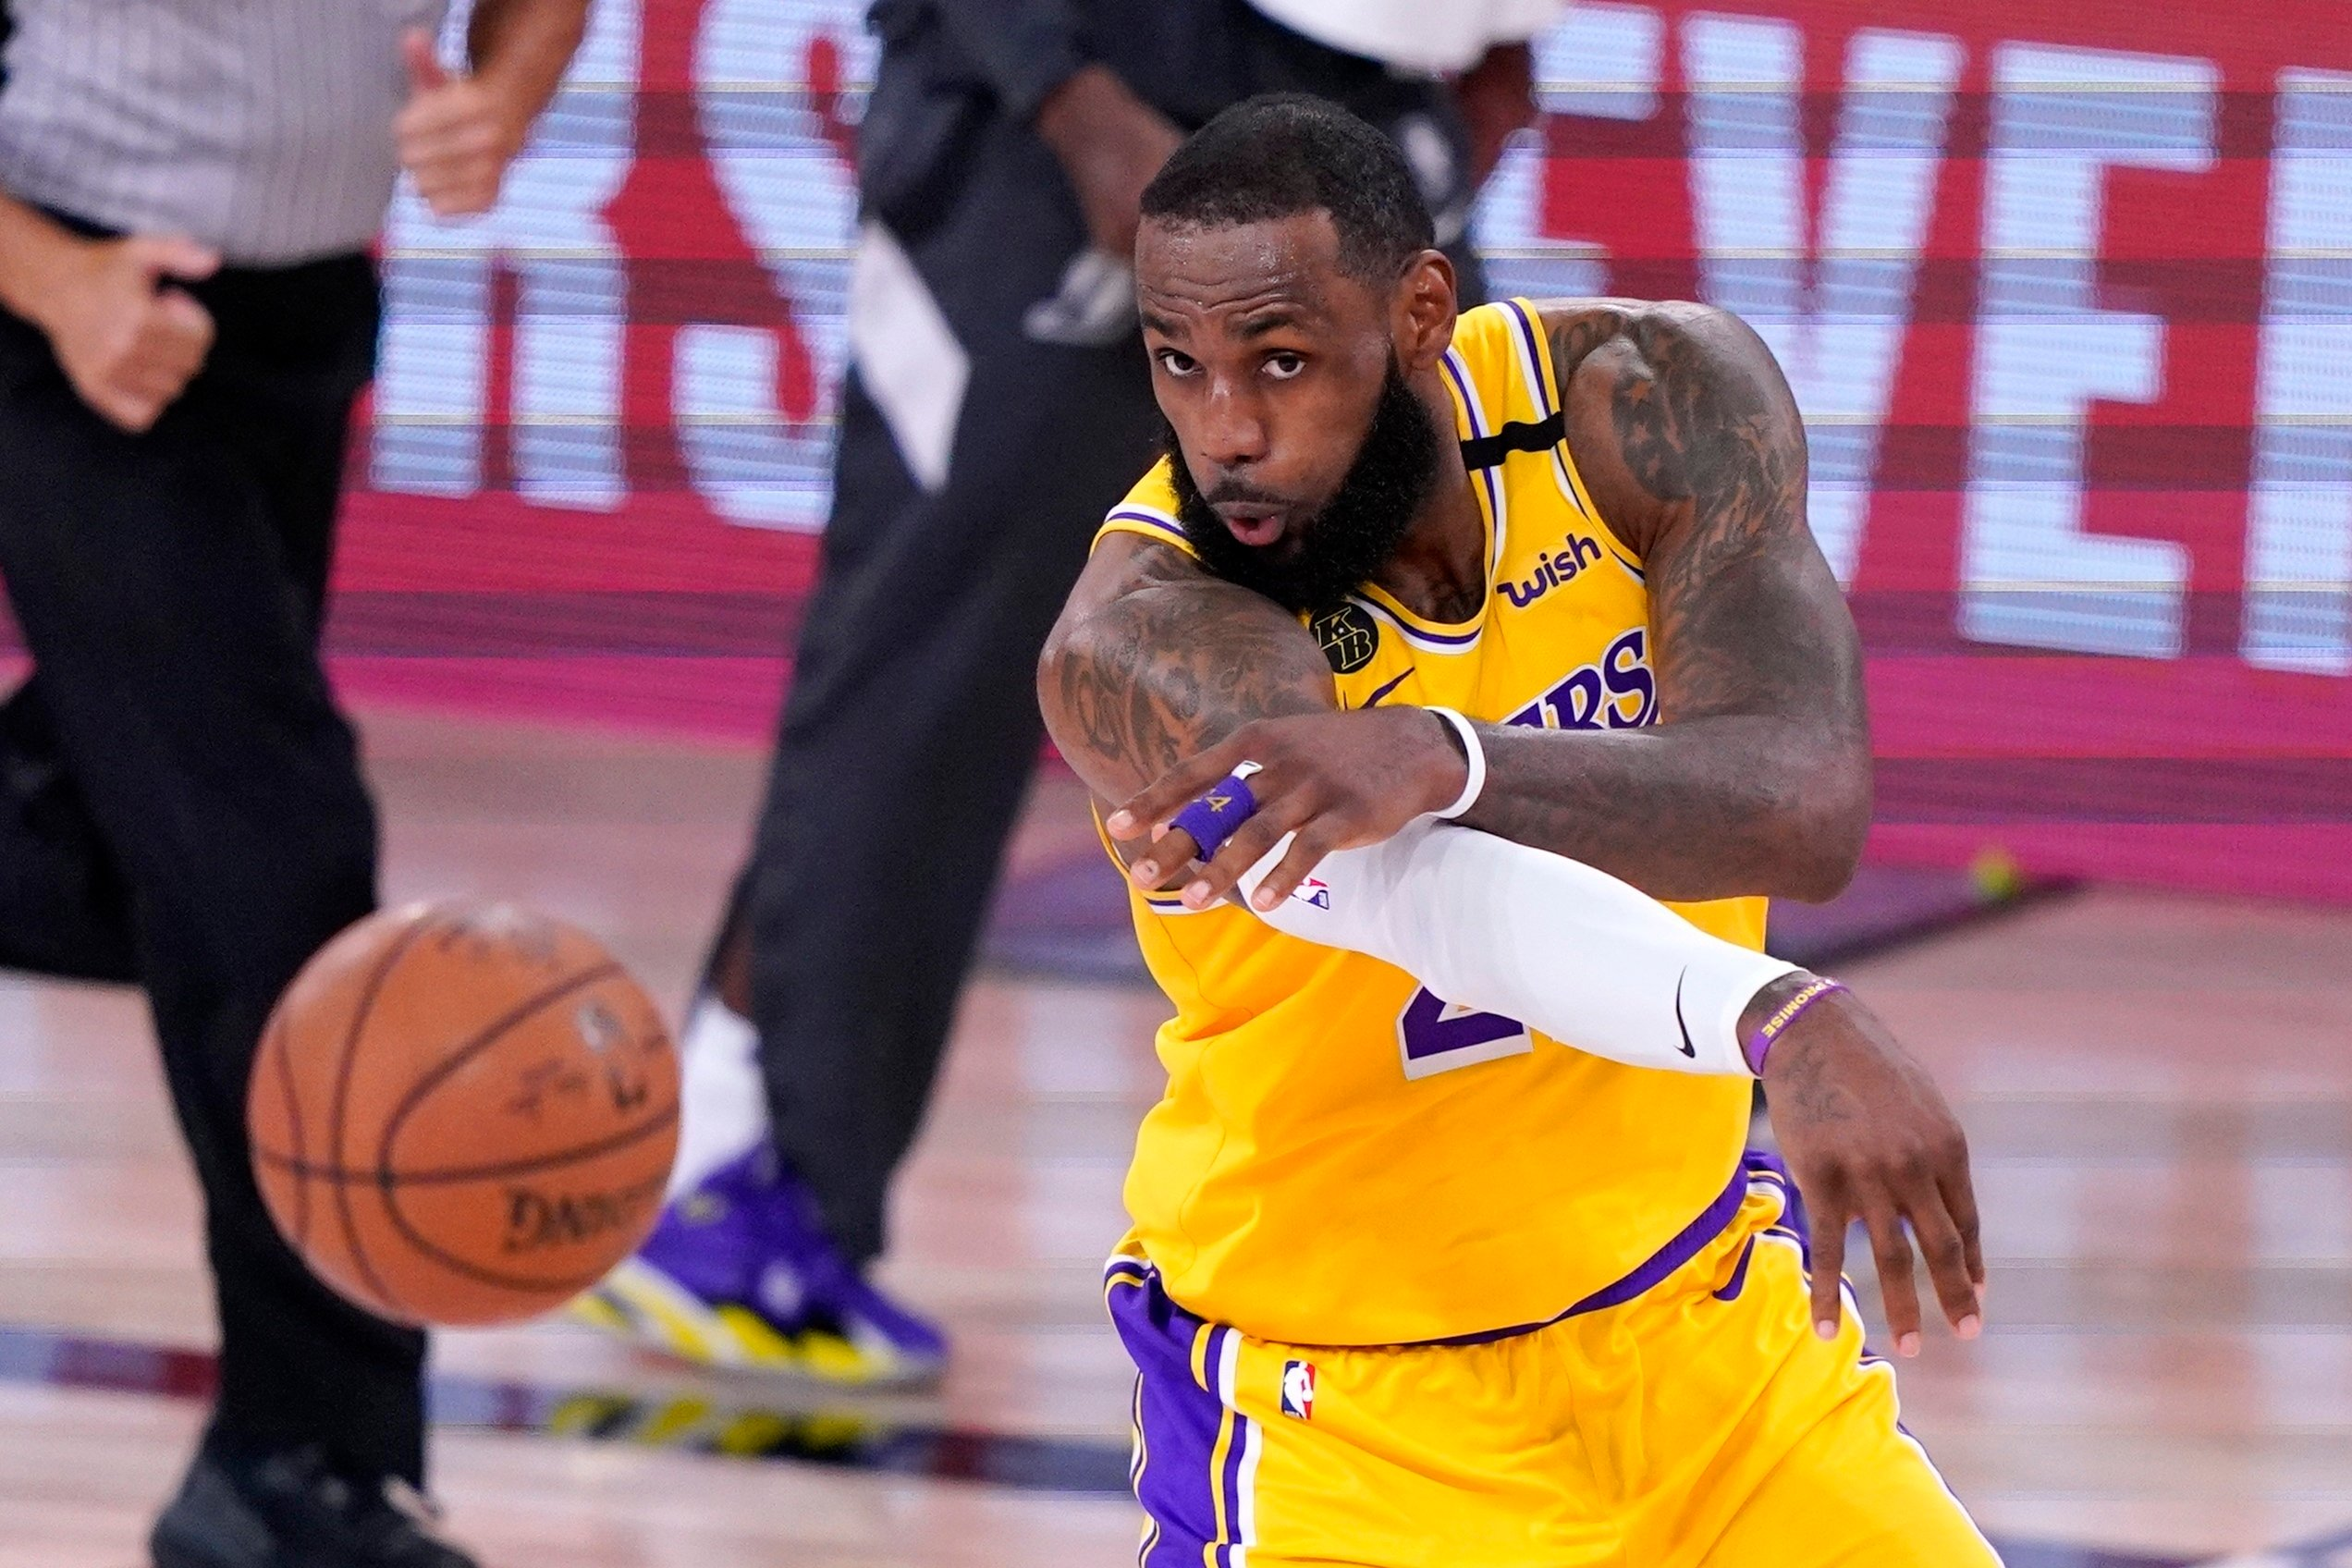 Los Angeles Lakers beat Denver Nuggets to take 1-0 series lead